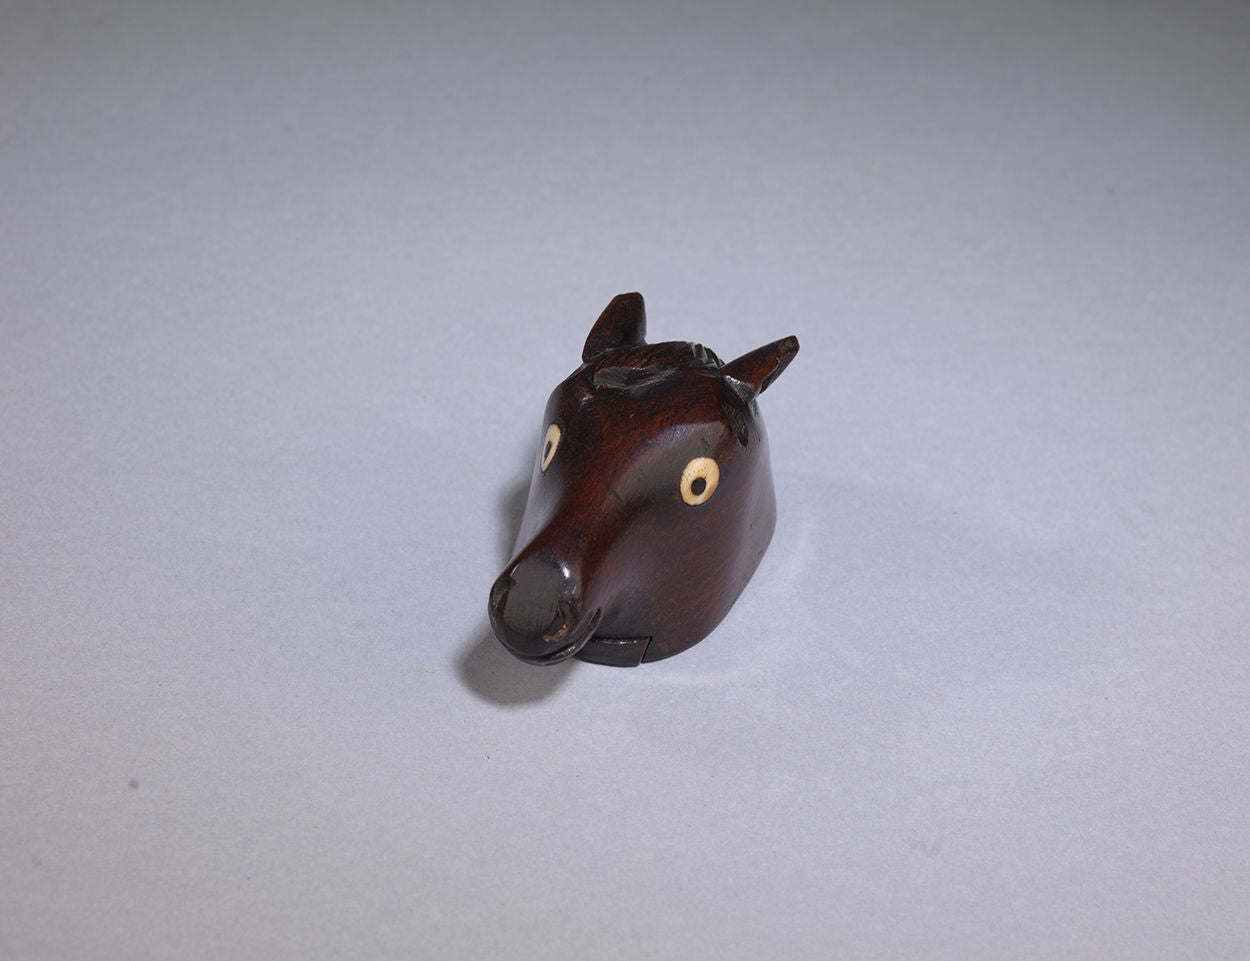 Georgian Snuff Box Sculpted into the Form of a Horse's Head